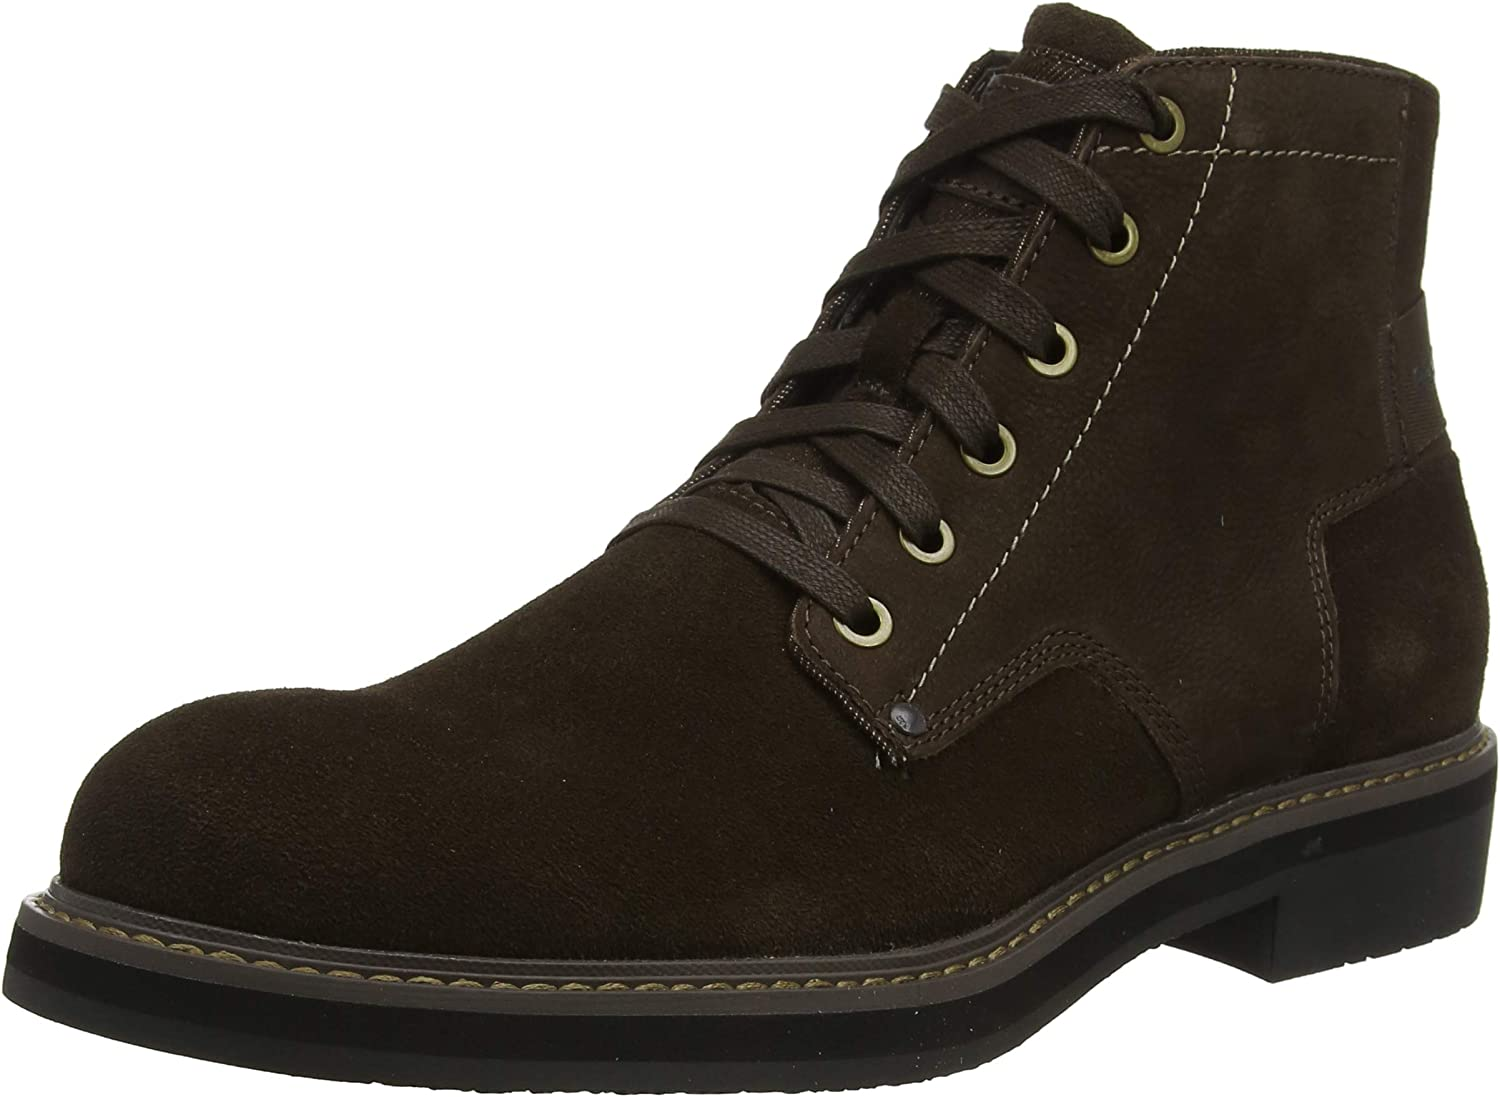 Bottes /& Bottines Classiques Homme G-STAR RAW Garber Derby